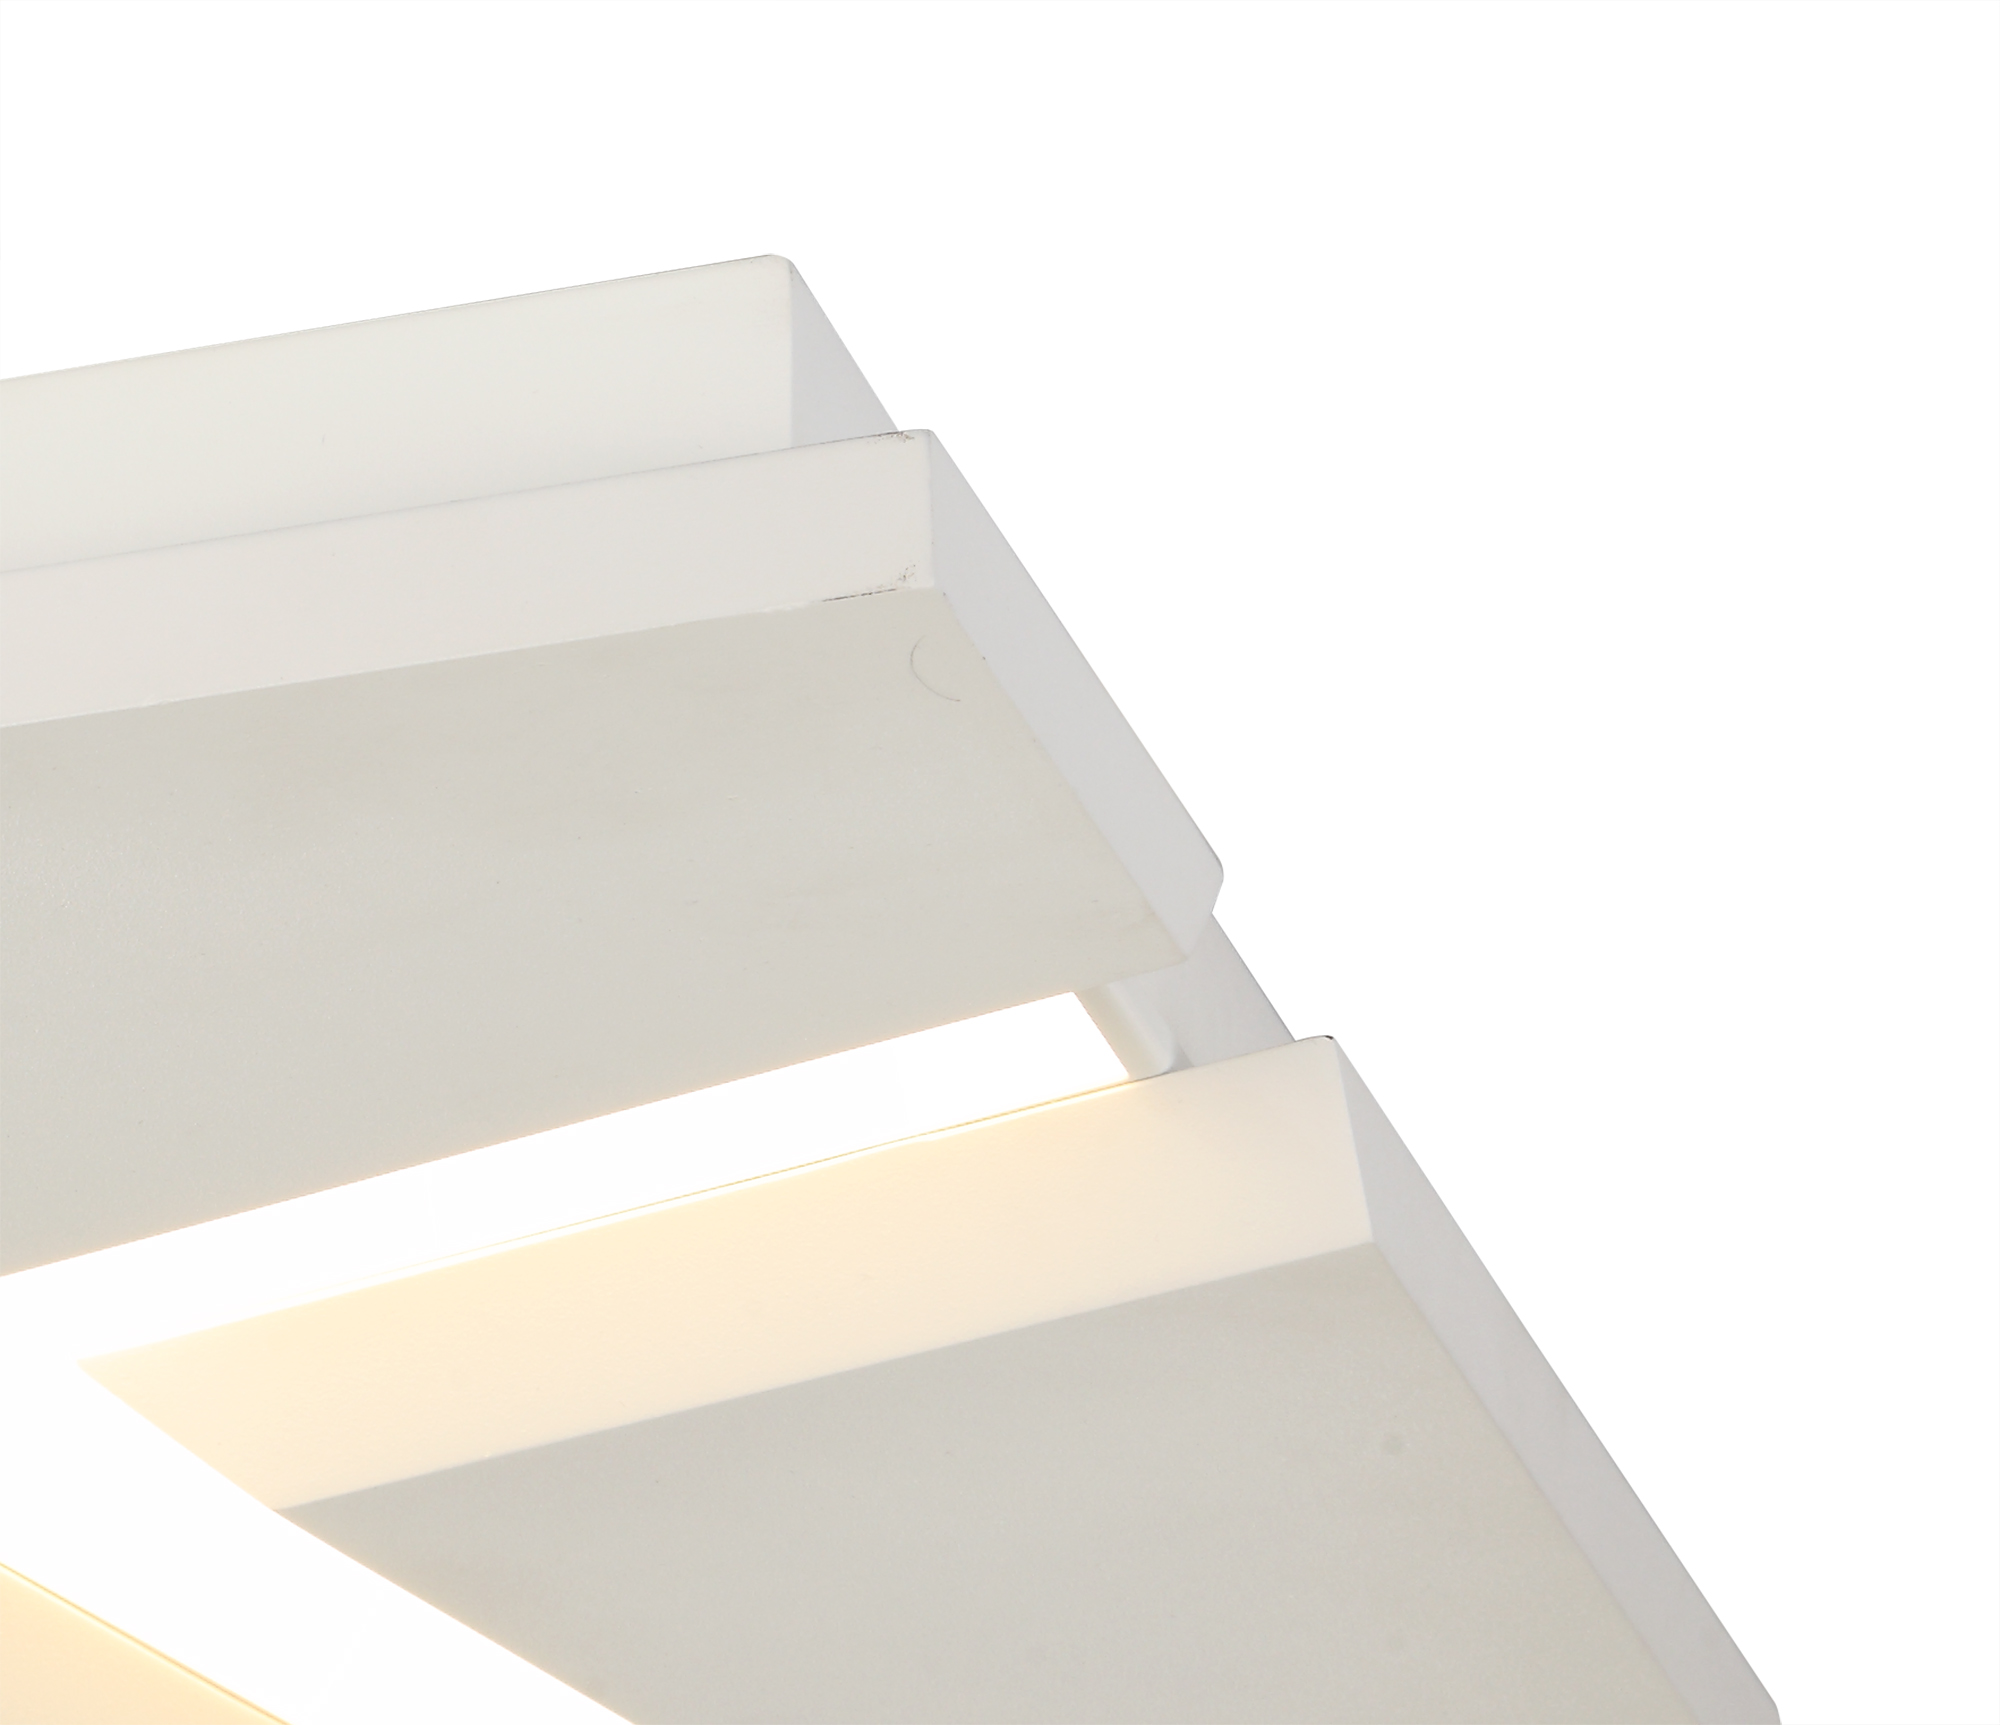 Flush Square Square Ceiling, 1 x 50W LED, 3000K, 3500lm, Sand White, 3yrs Warranty